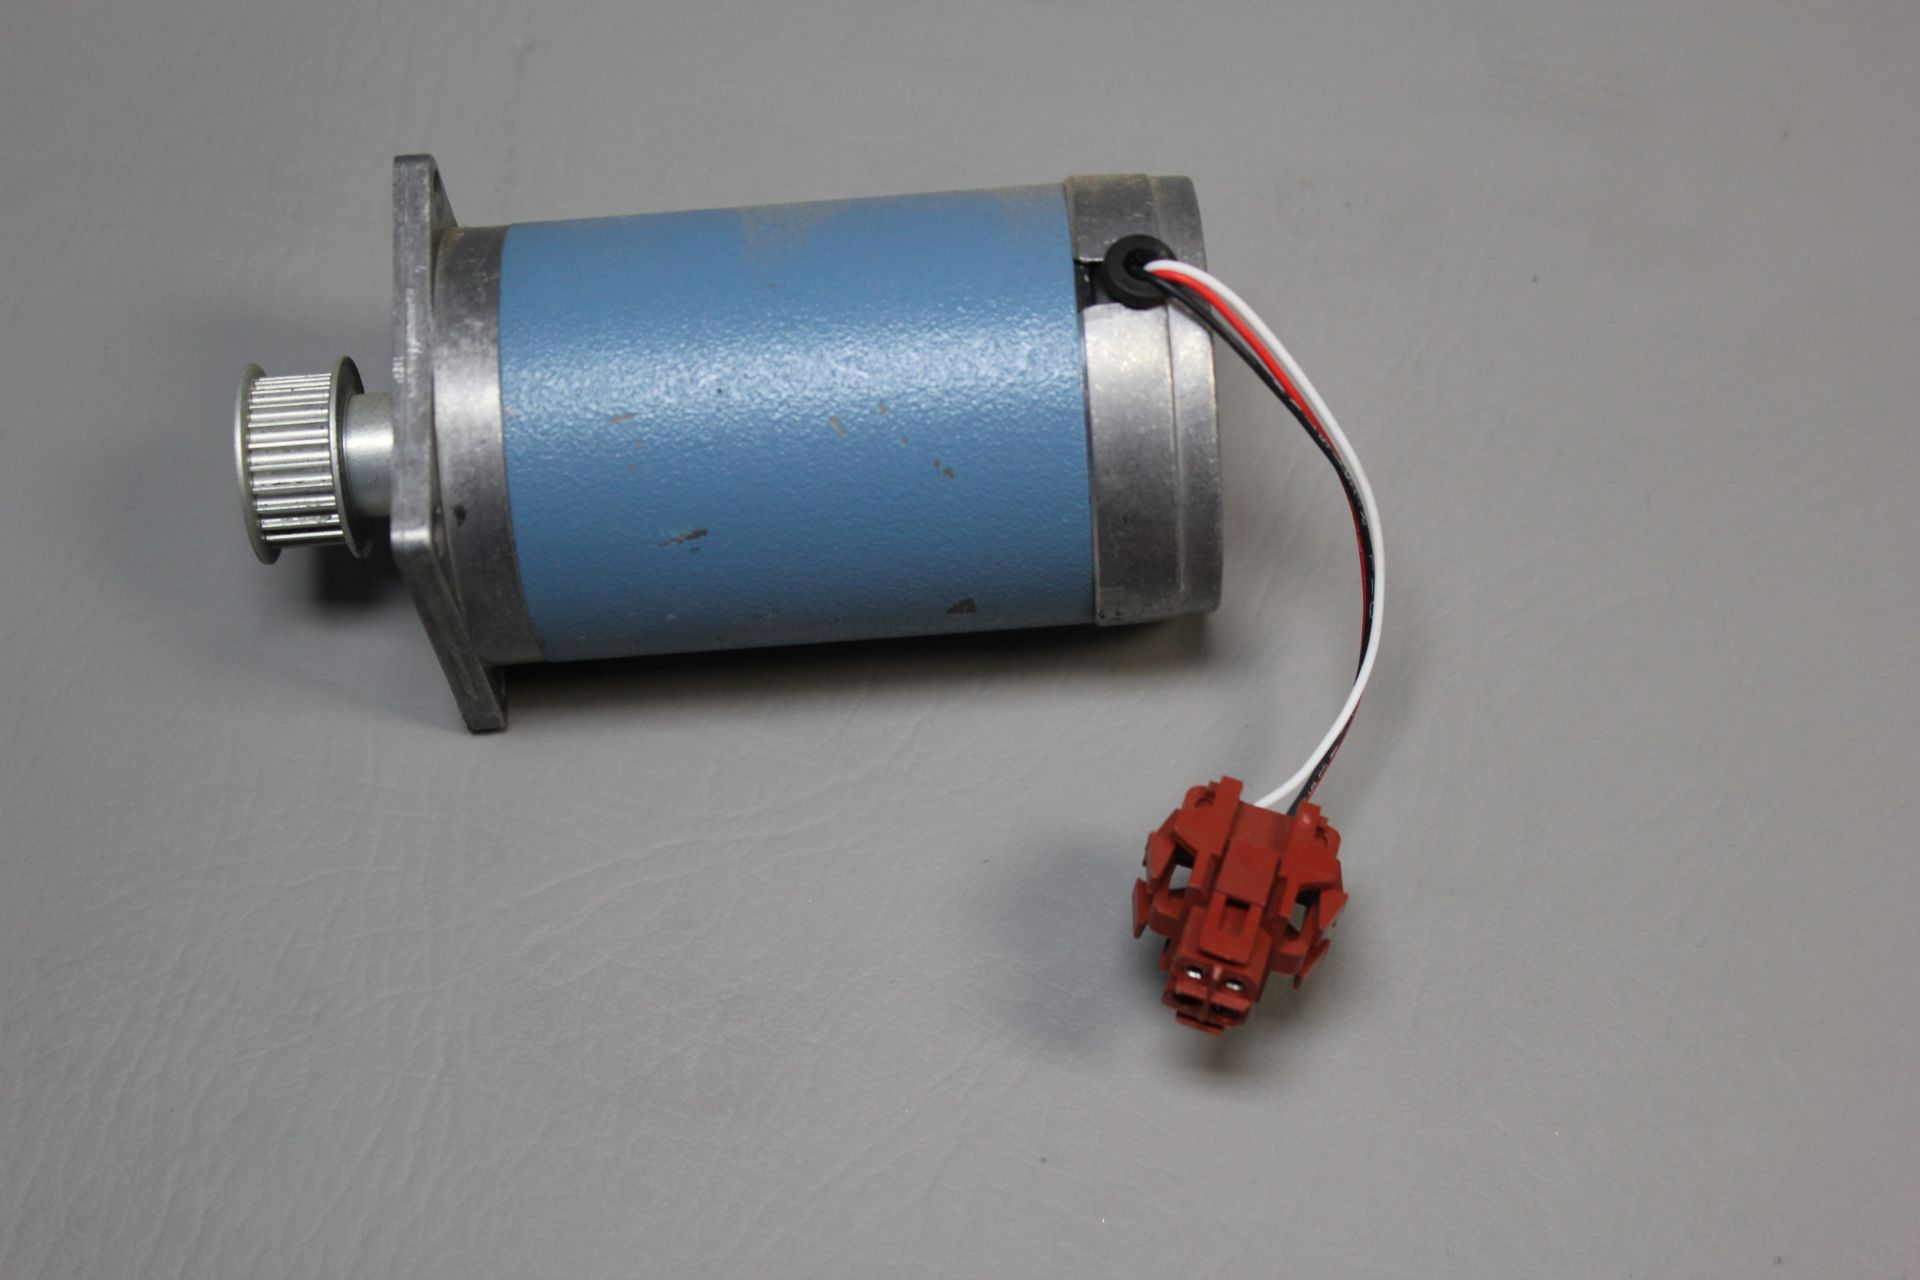 SUPERIOR ELECTRIC SLO-SYN STEPPER MOTOR - Image 3 of 3